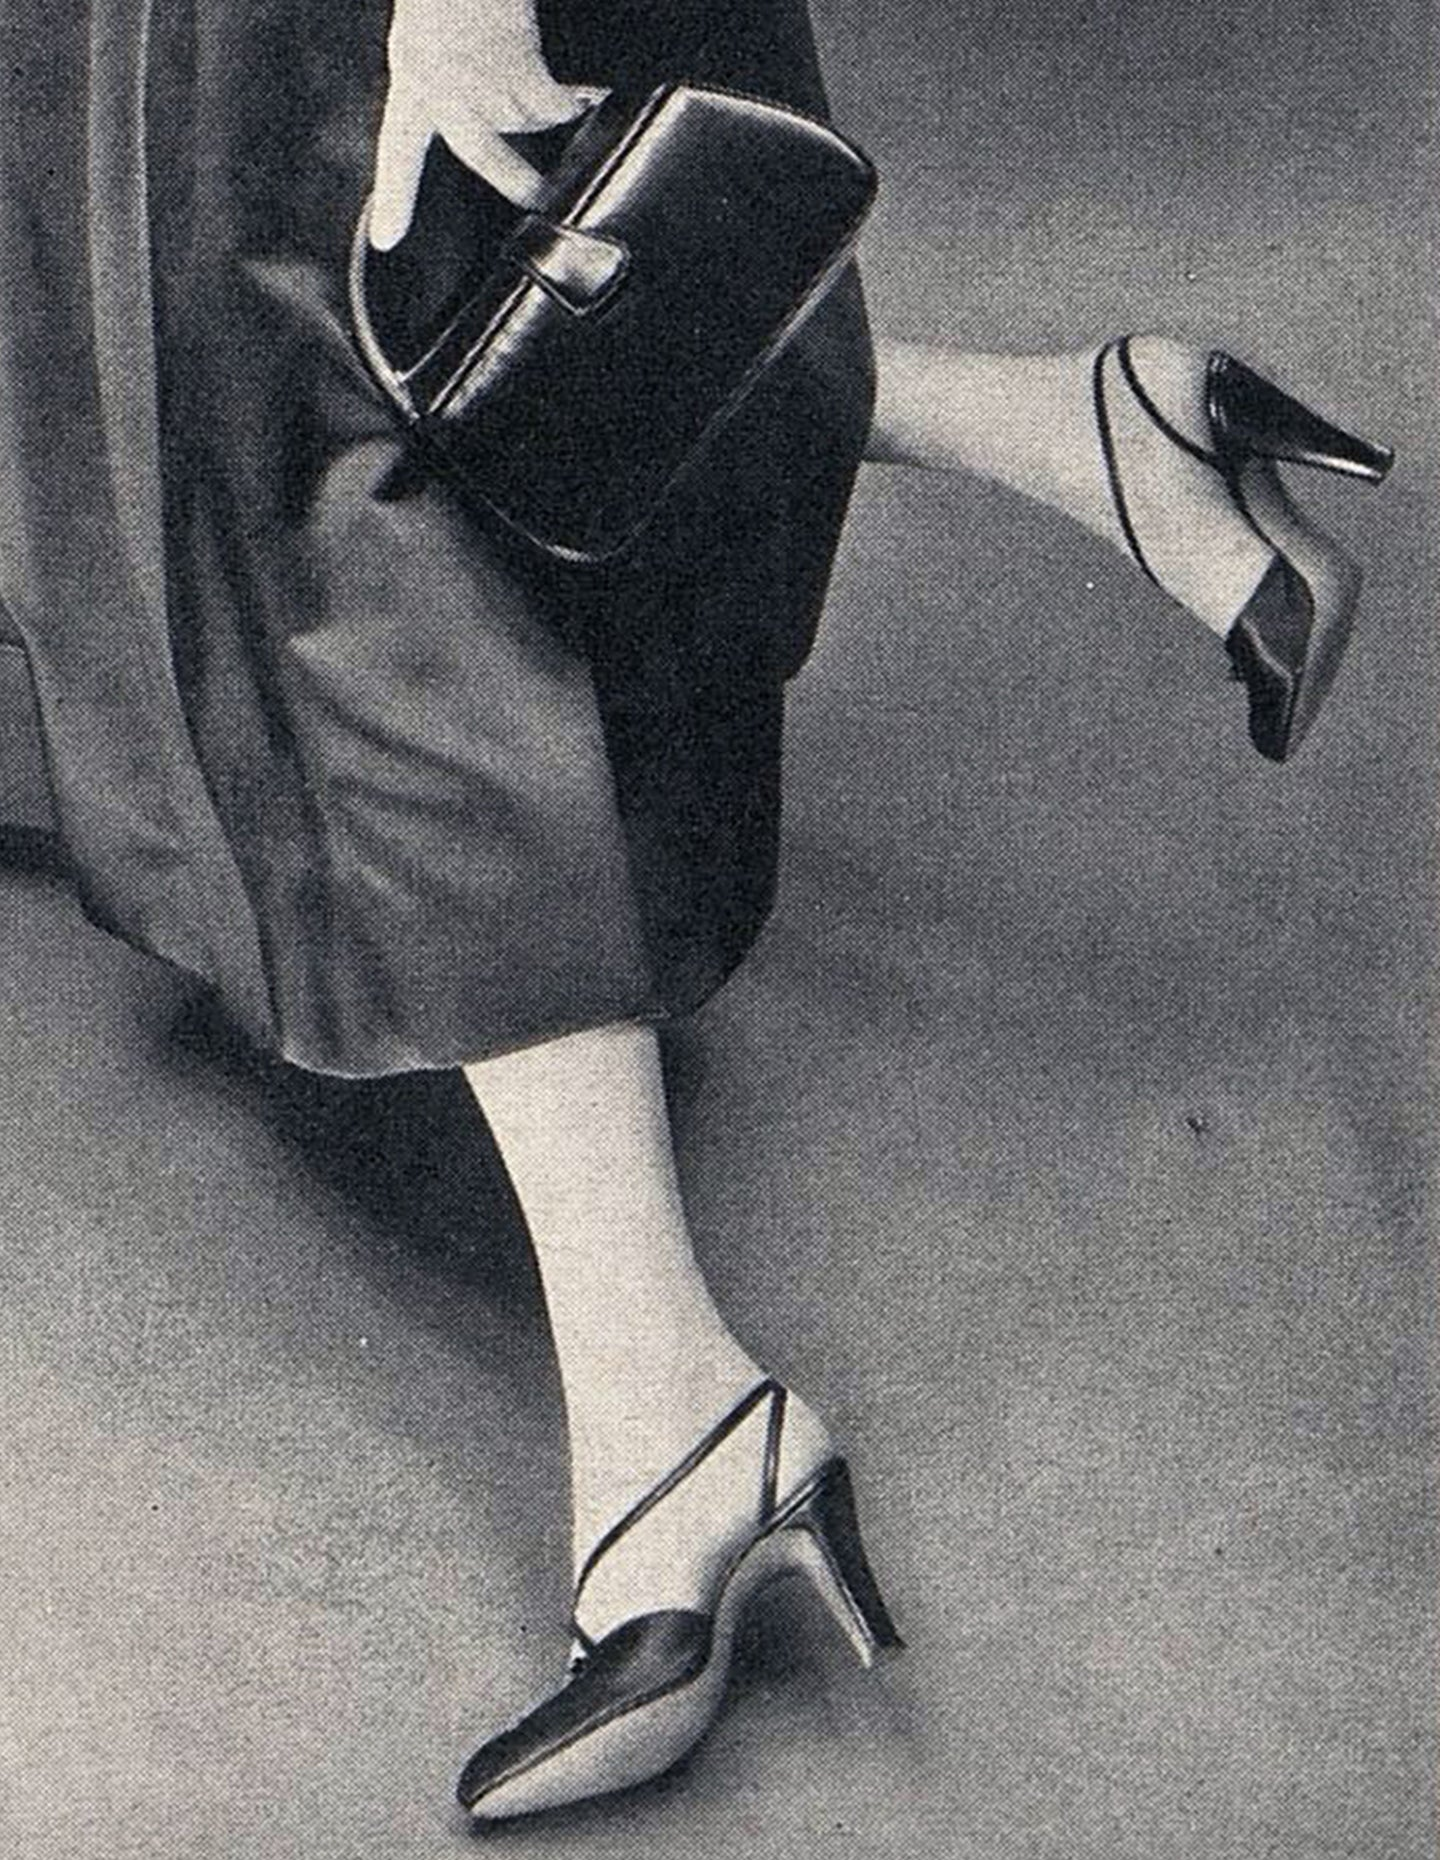 Harper's Bazaar, September 1952. Photographer: Ernst Beadle.